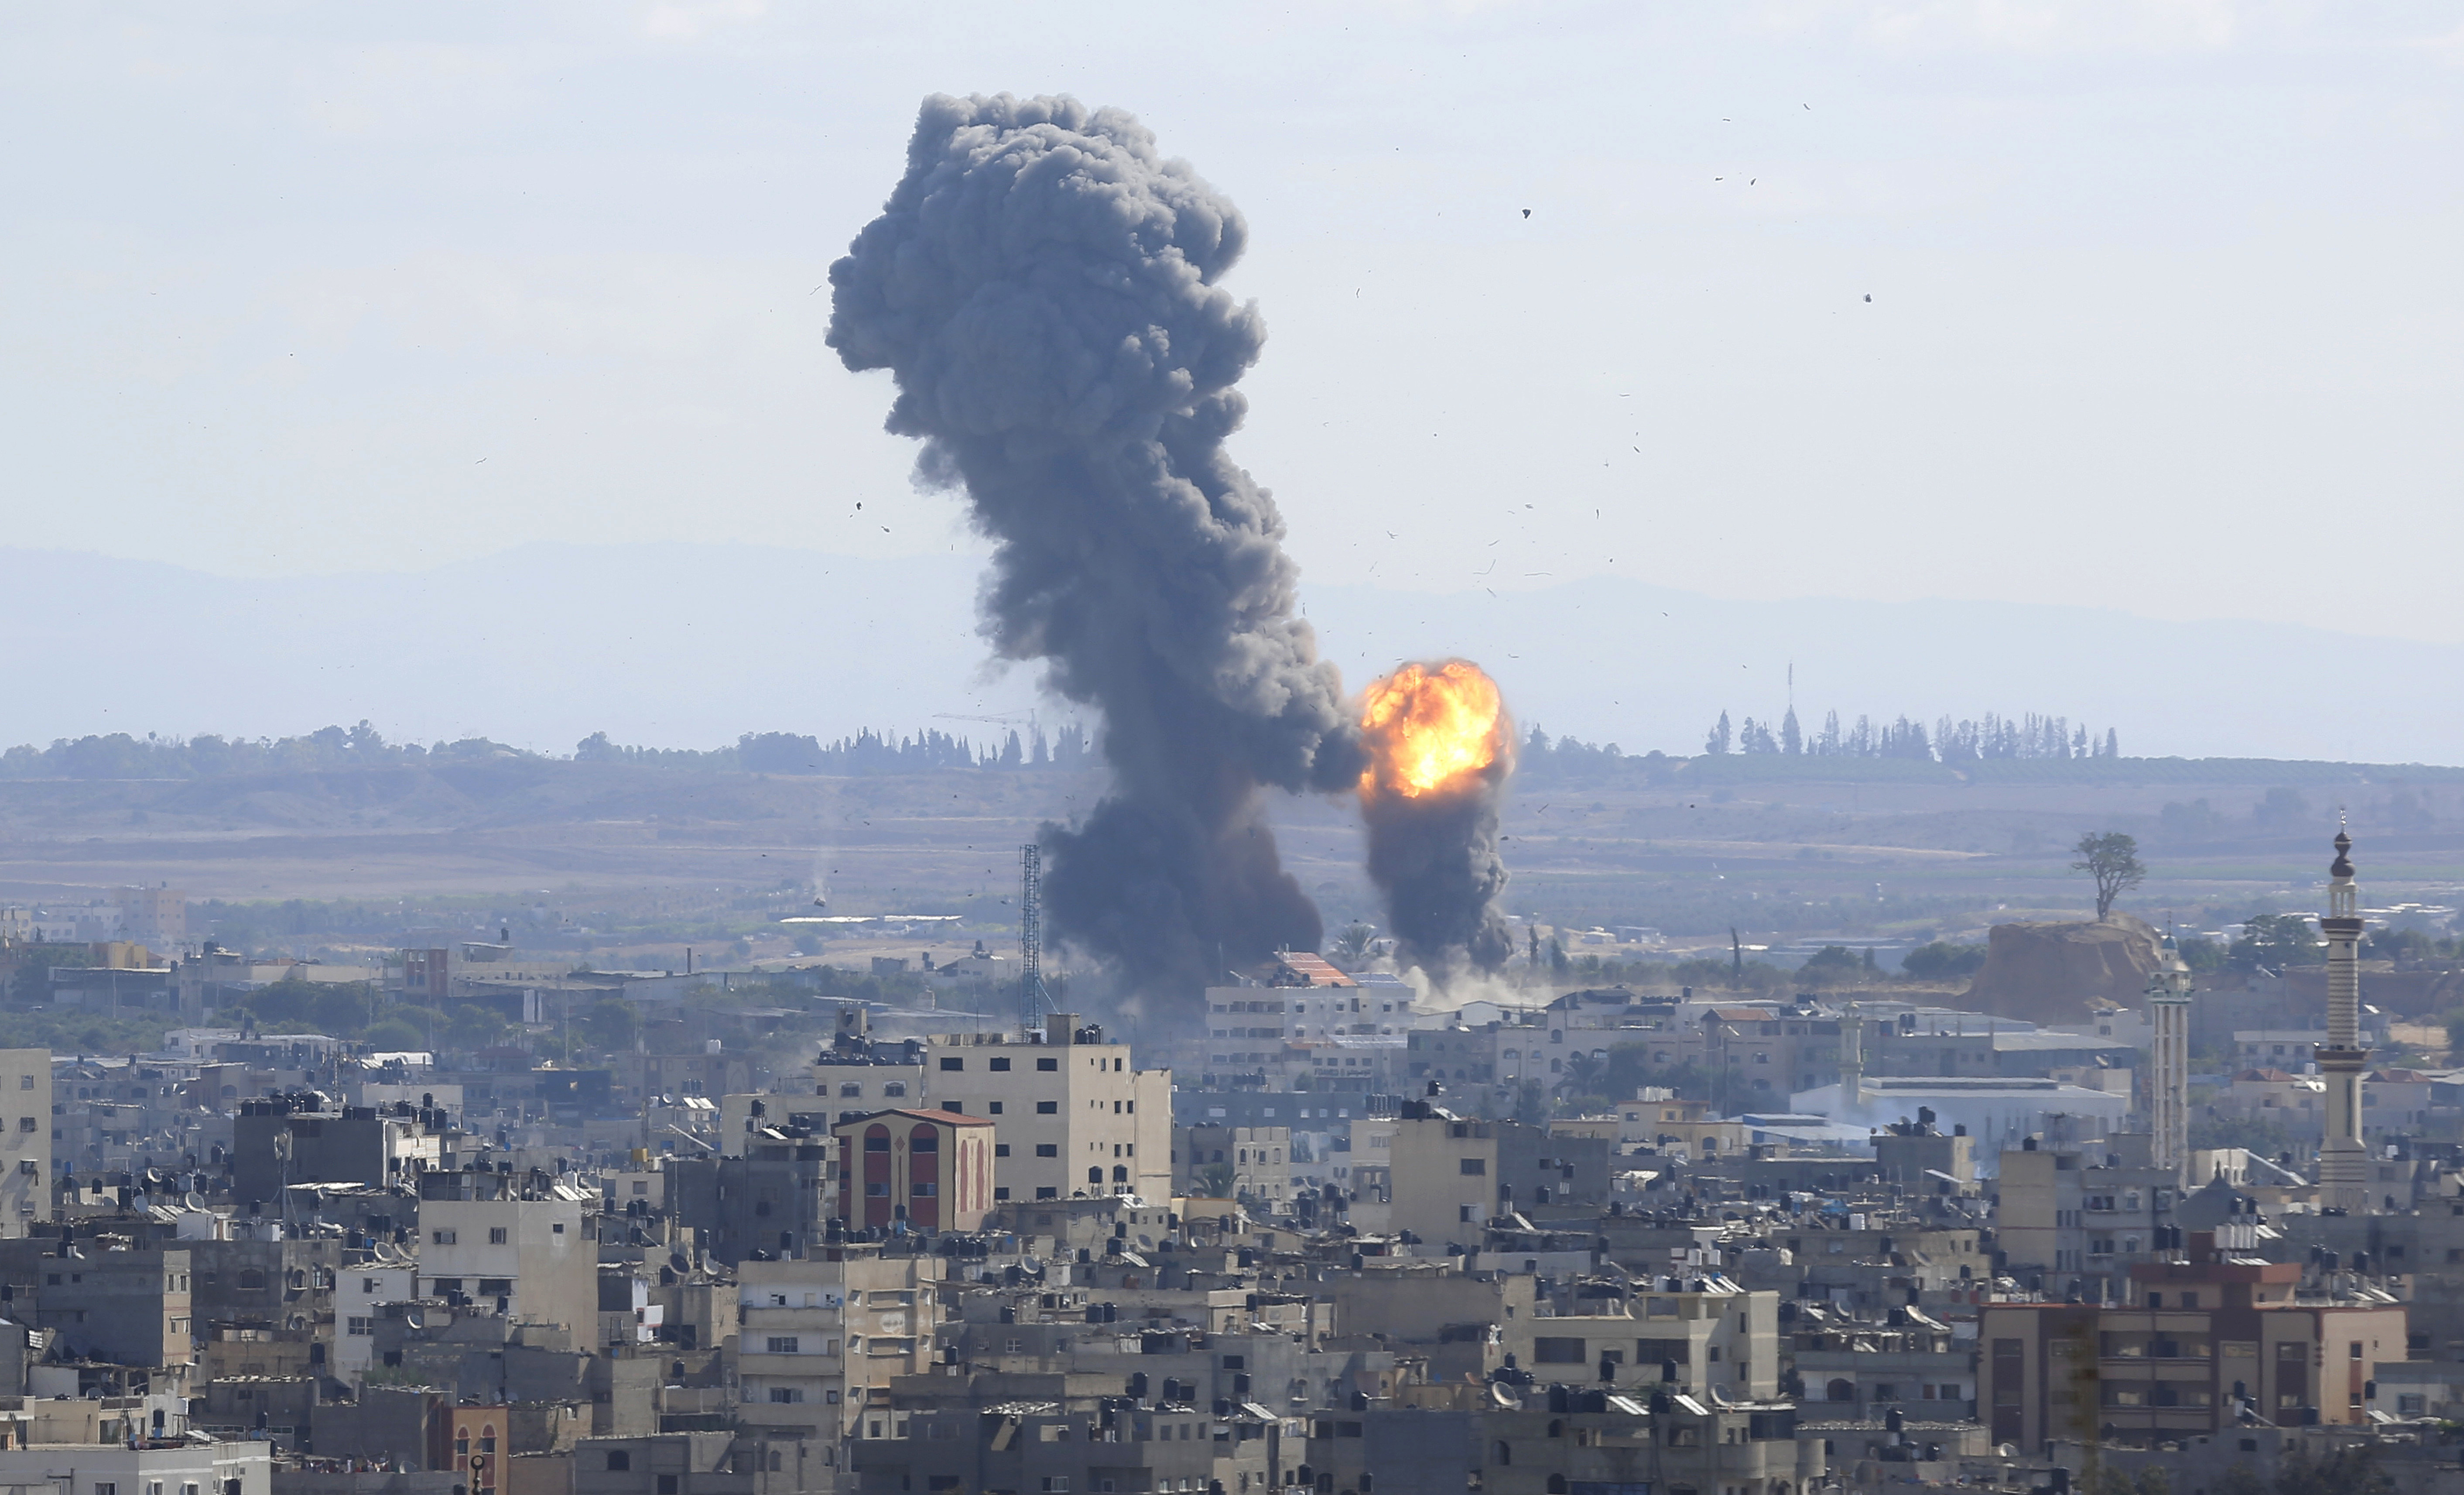 Smoke rises from an explosion caused by an Israeli airstrike in Gaza City, Saturday, Oct. 27, 2018. Israeli aircraft struck several militant sites across the Gaza Strip early Saturday shortly after militants fired rockets into southern Israel, the Israeli military said. (AP Photo/Hatem Moussa)